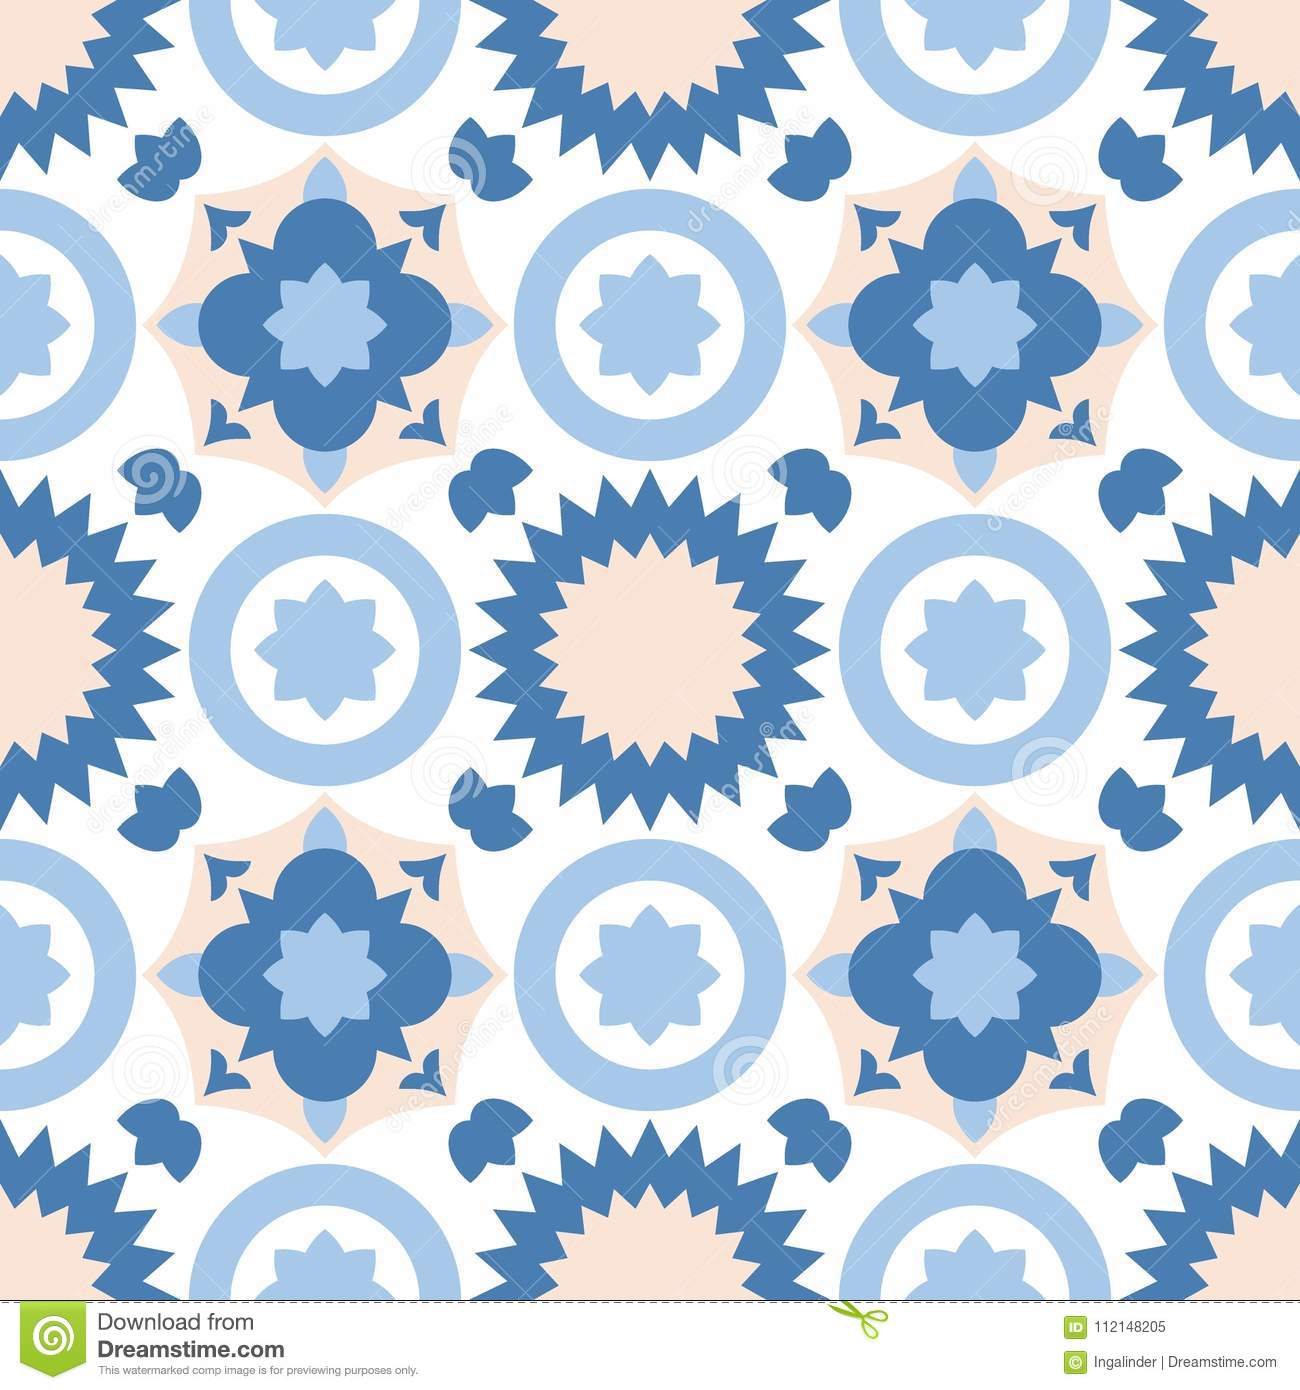 Tile Pastel Decorative Floor Tiles Vector Pattern Or Seamless ...